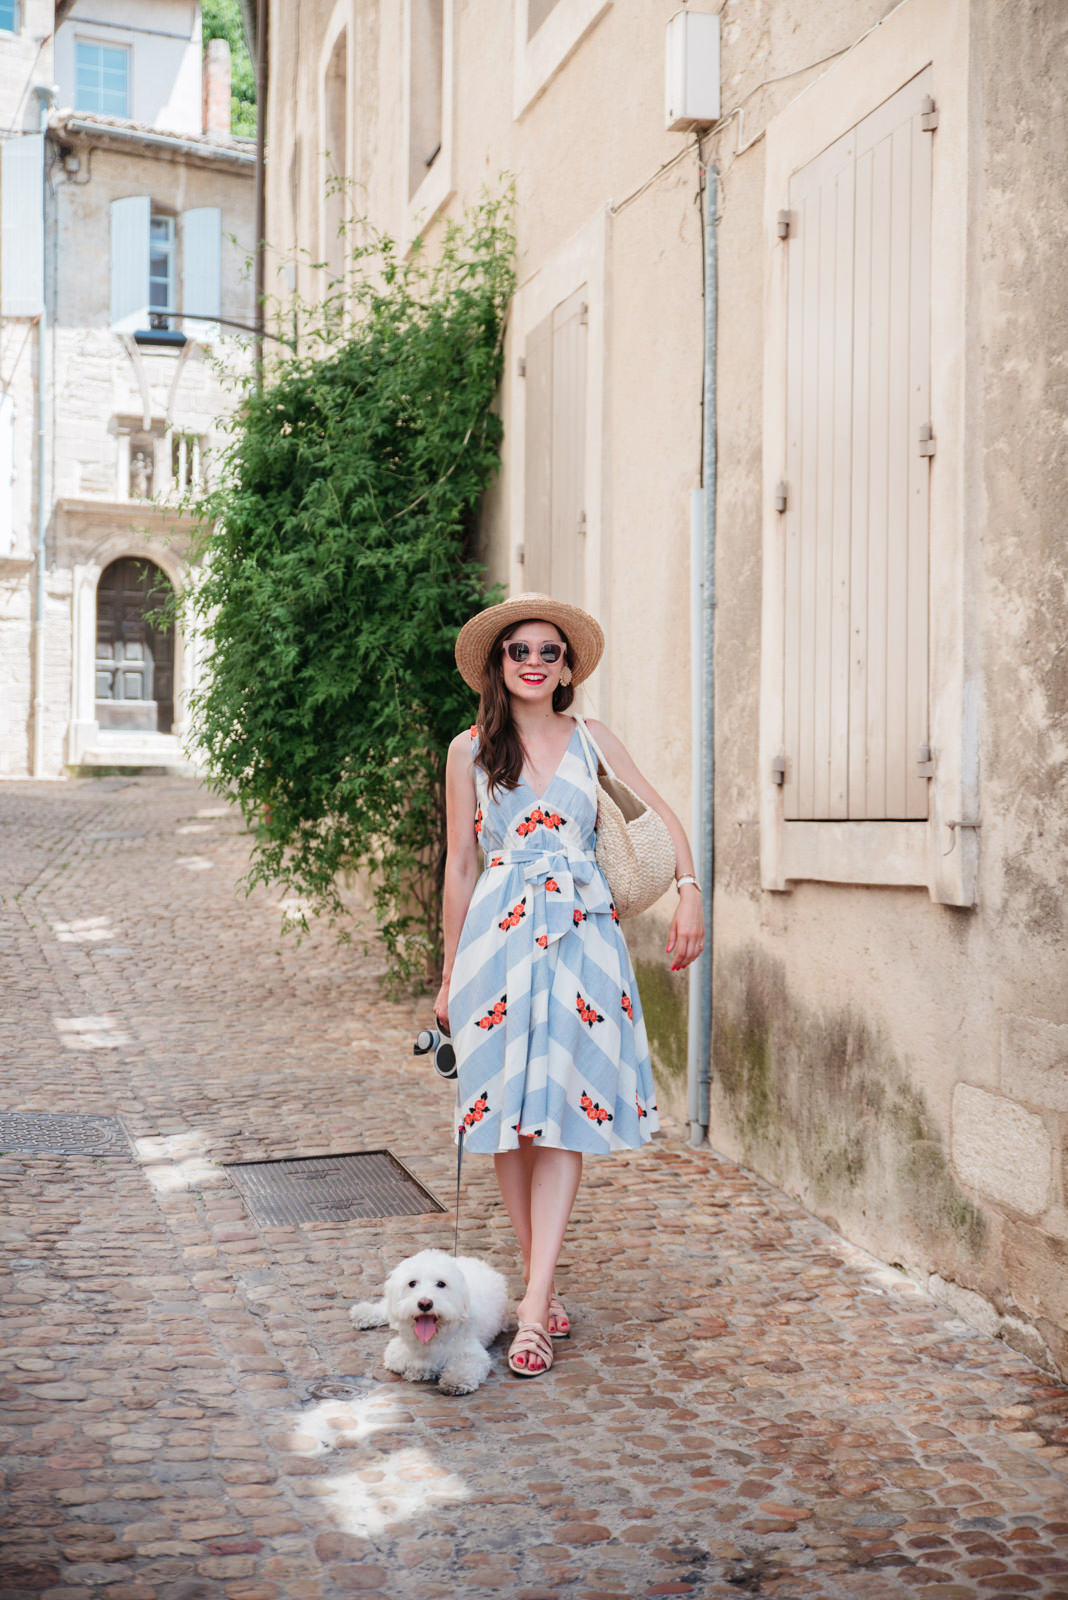 Blog-Mode-And-The-City-Lifestyle-Voyage-Avignon-Mas-Des-Herbes-Blanches-9